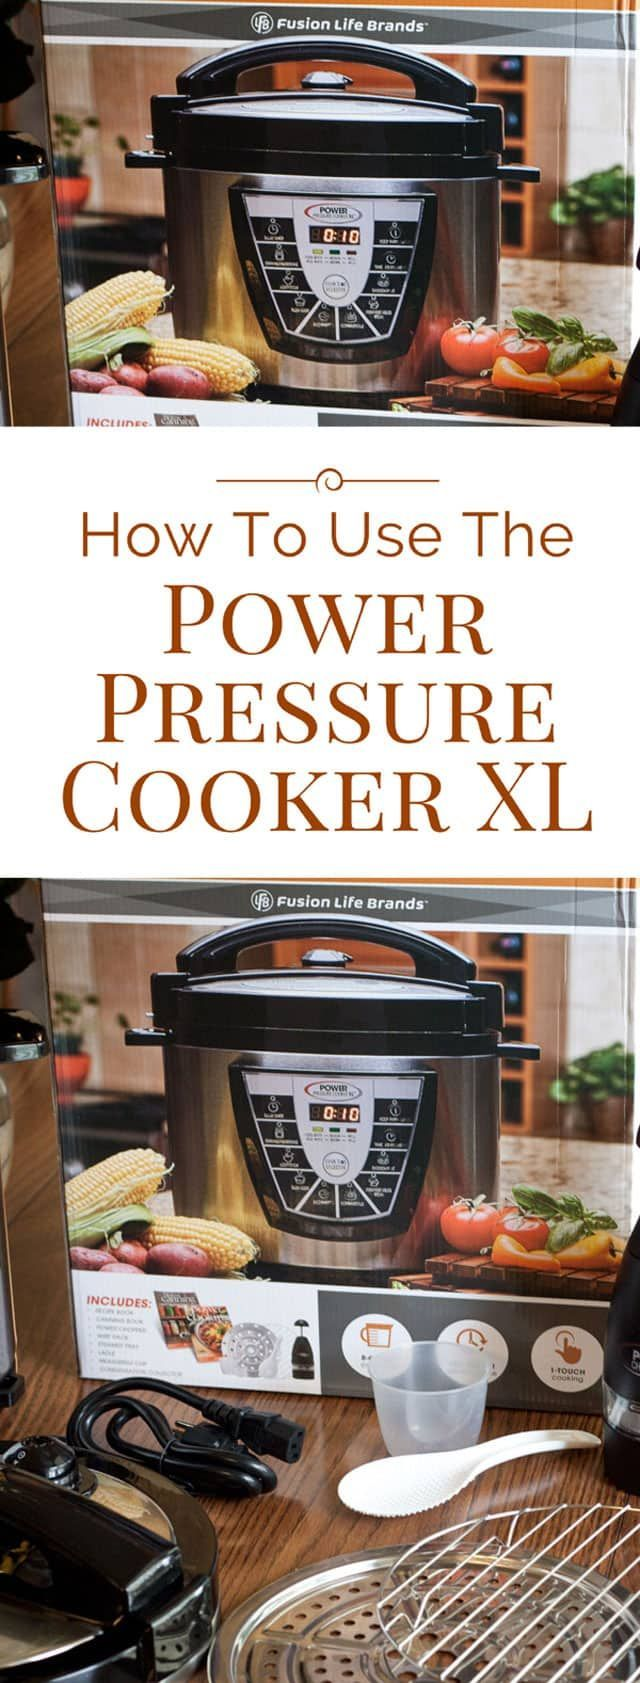 The Power Pressure Cooker XL is one of the best selling electric pressure cookers. So I decided it was time to buy one and do a How to Use post.